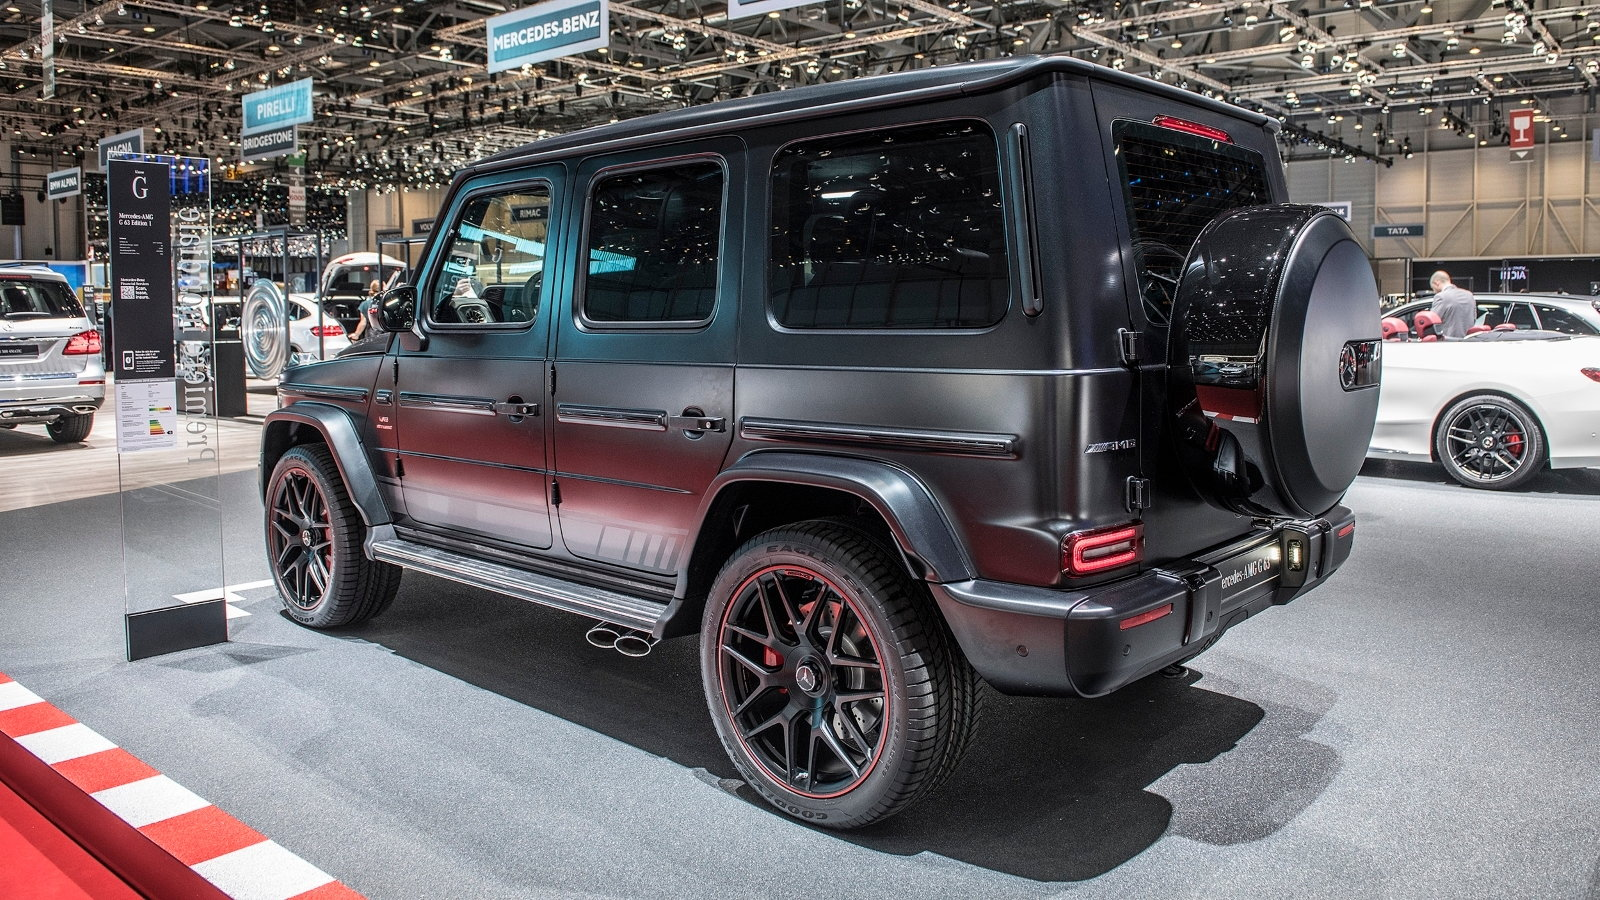 The Insane 577 HP 2019 AMG G63 Debuts in Geneva